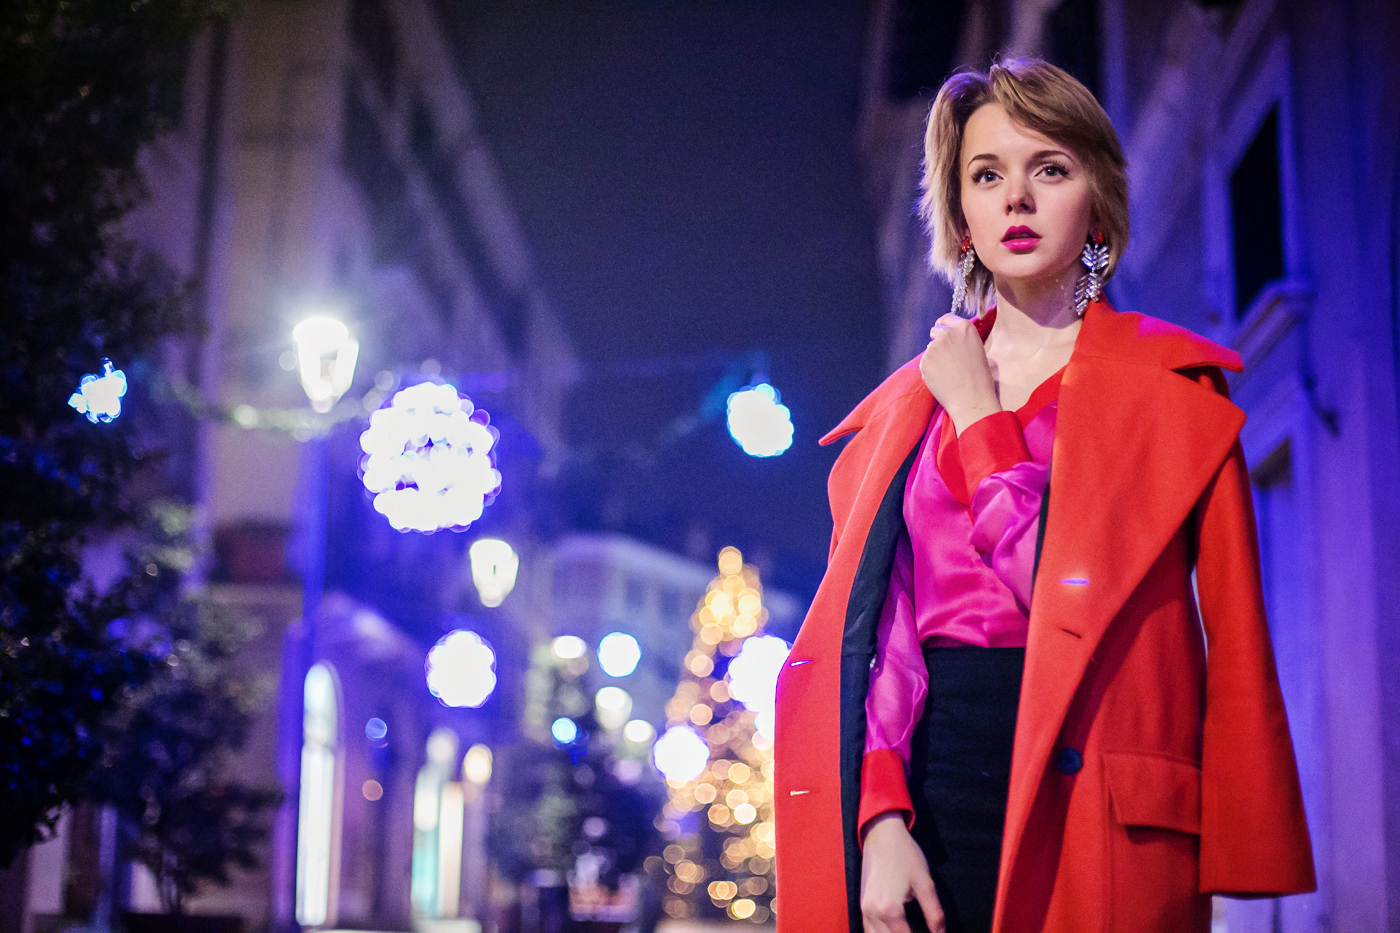 darya kamalova thecablook russian italian fashion bogger street style trend high waist skirt big earings asos maison academia blouse dvf diane von furstenberg circle bag long red coat guess black heels-18 copy